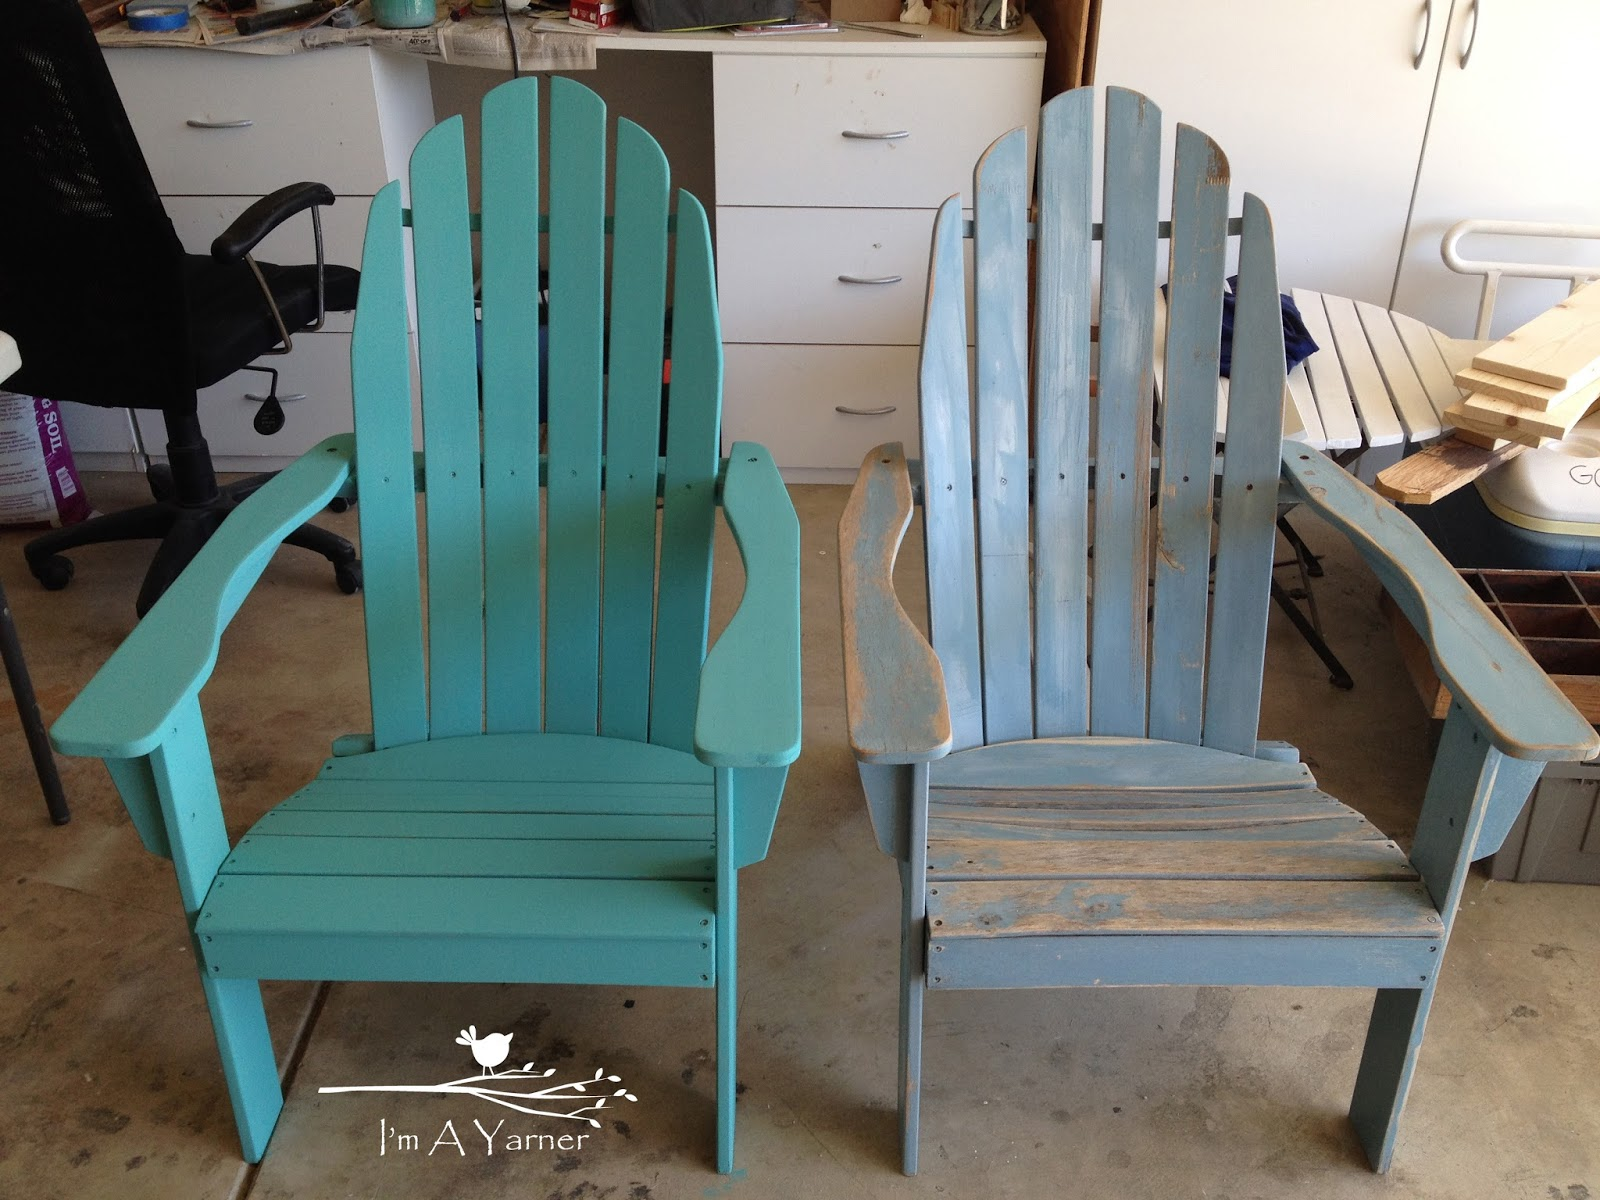 Paint For Adirondack Chairs Beige Slipper Chair I M A Yarner Updated What Huge Difference Little Can Make Don T Know Why But It Still Amazes Me